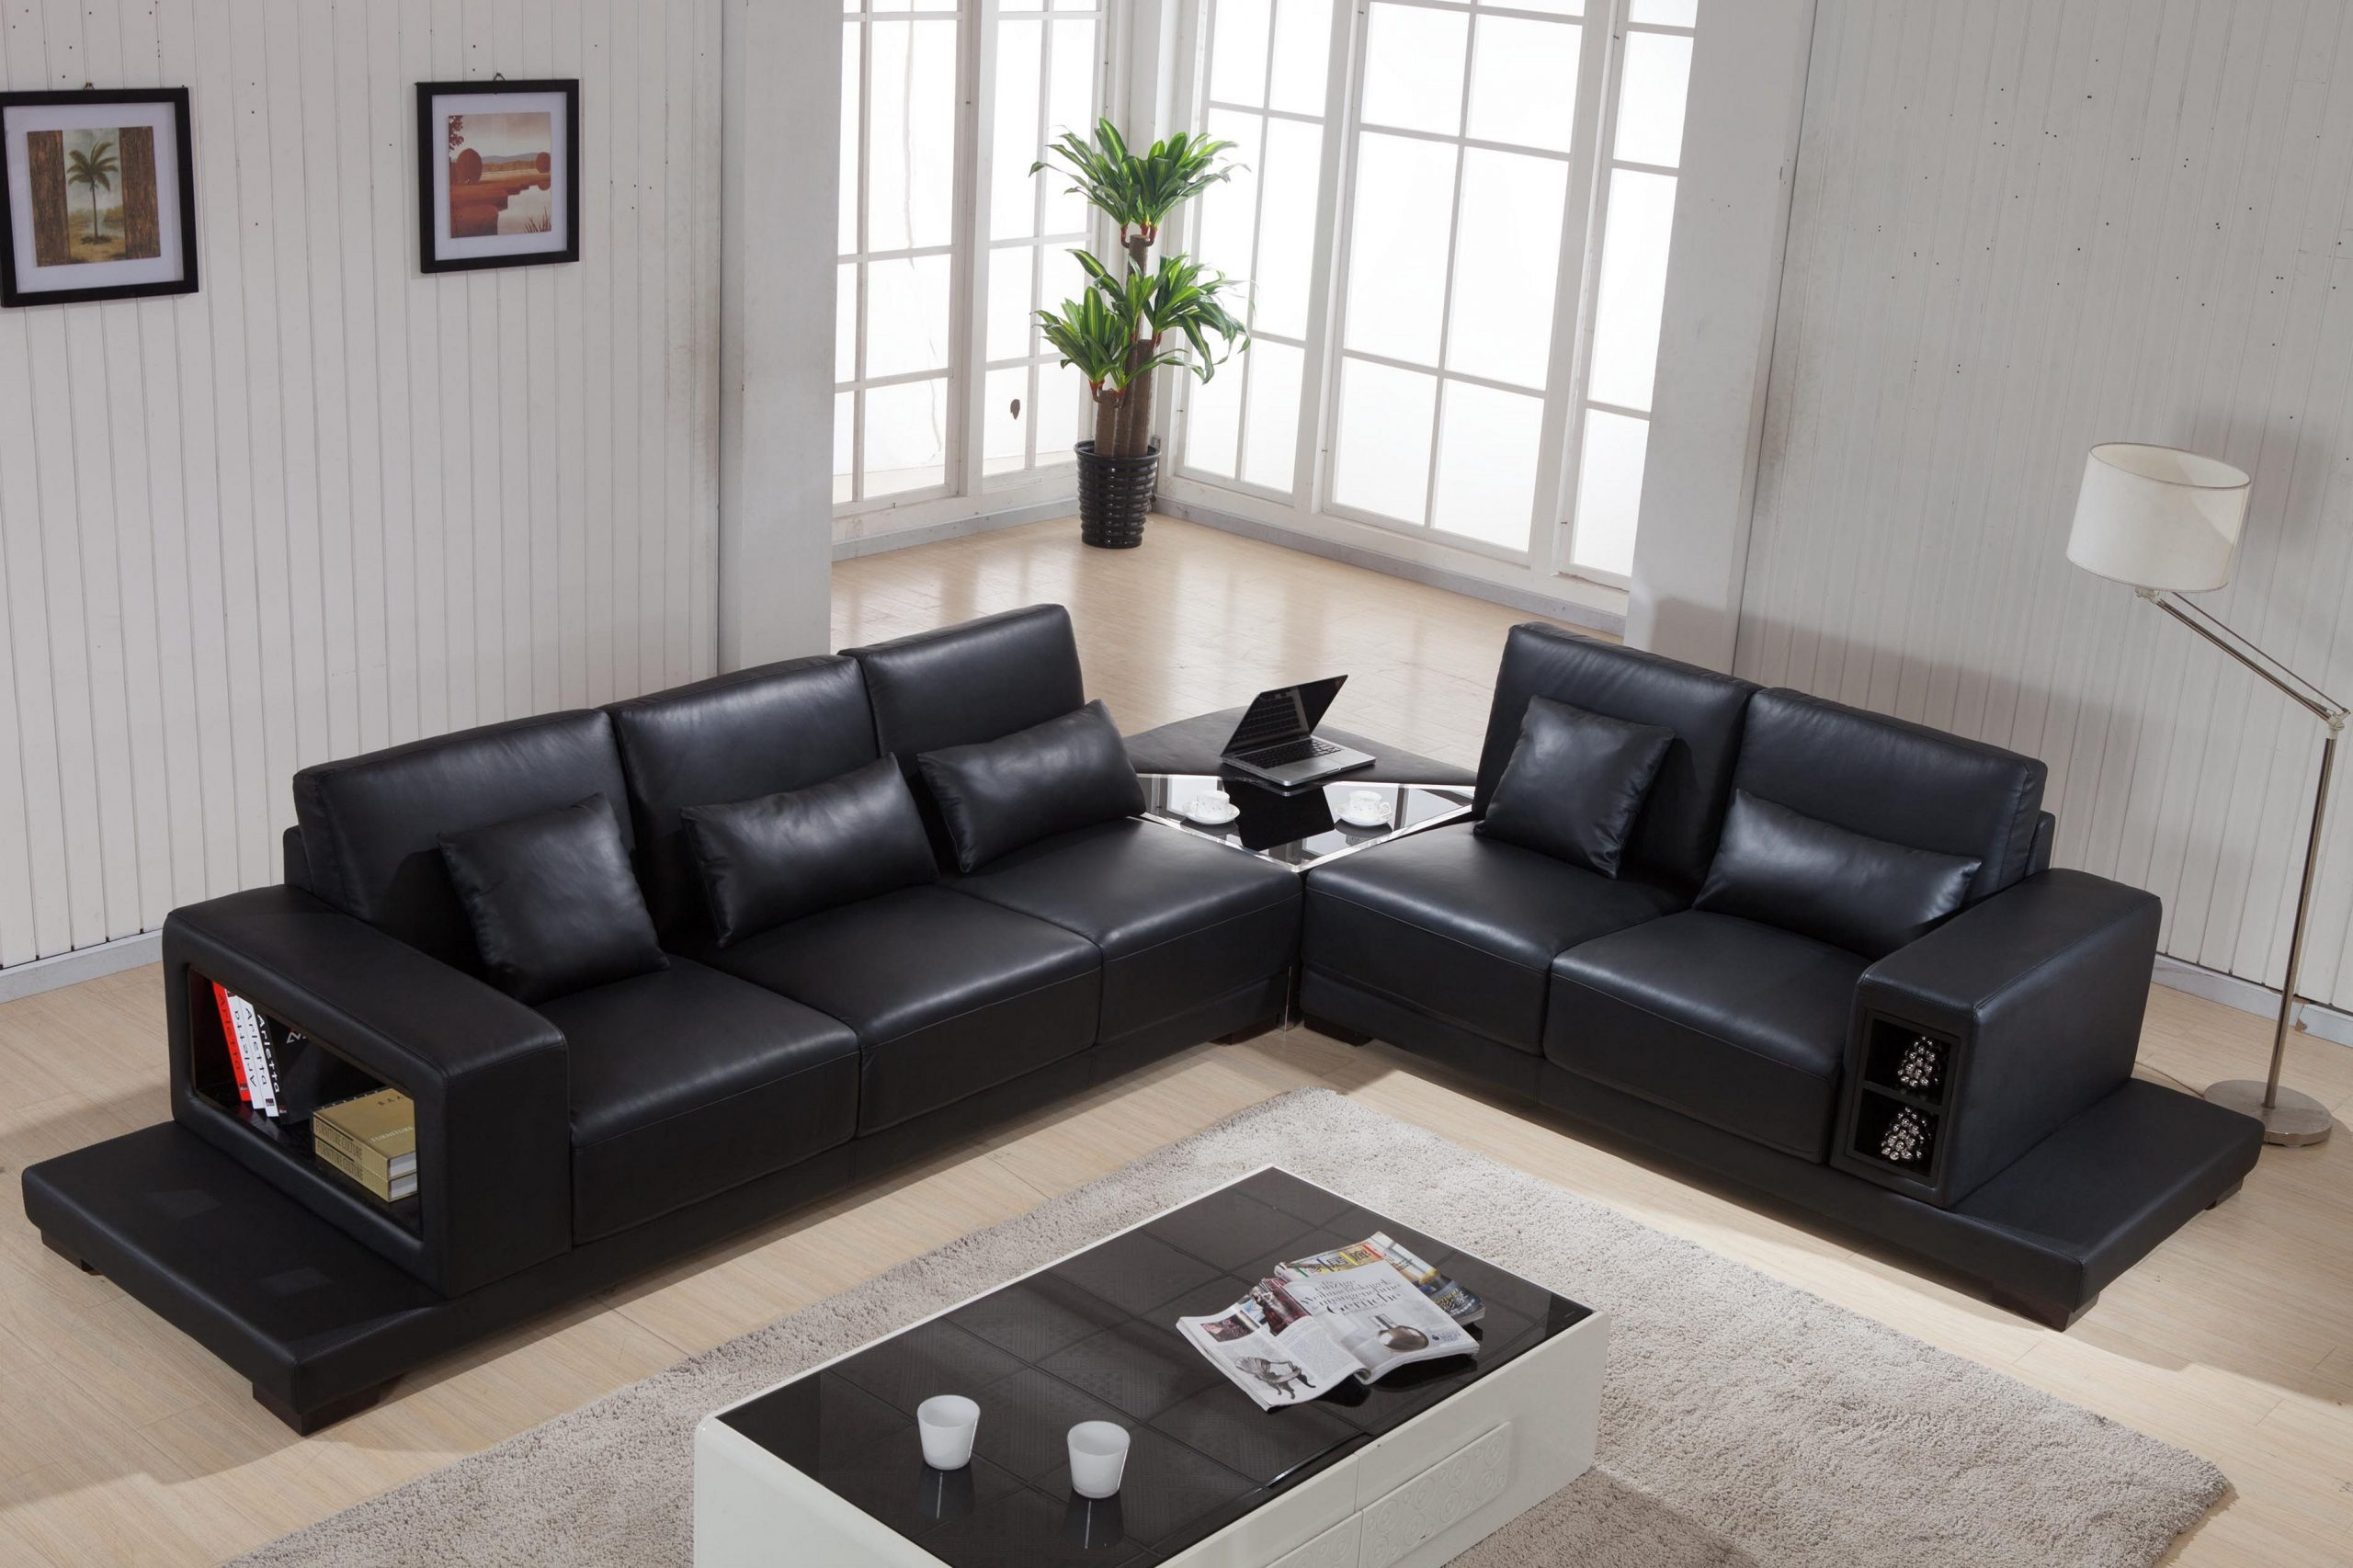 19 Cozy And Wonderful Living Room Design With Small Sofa Ideas — TERACEE